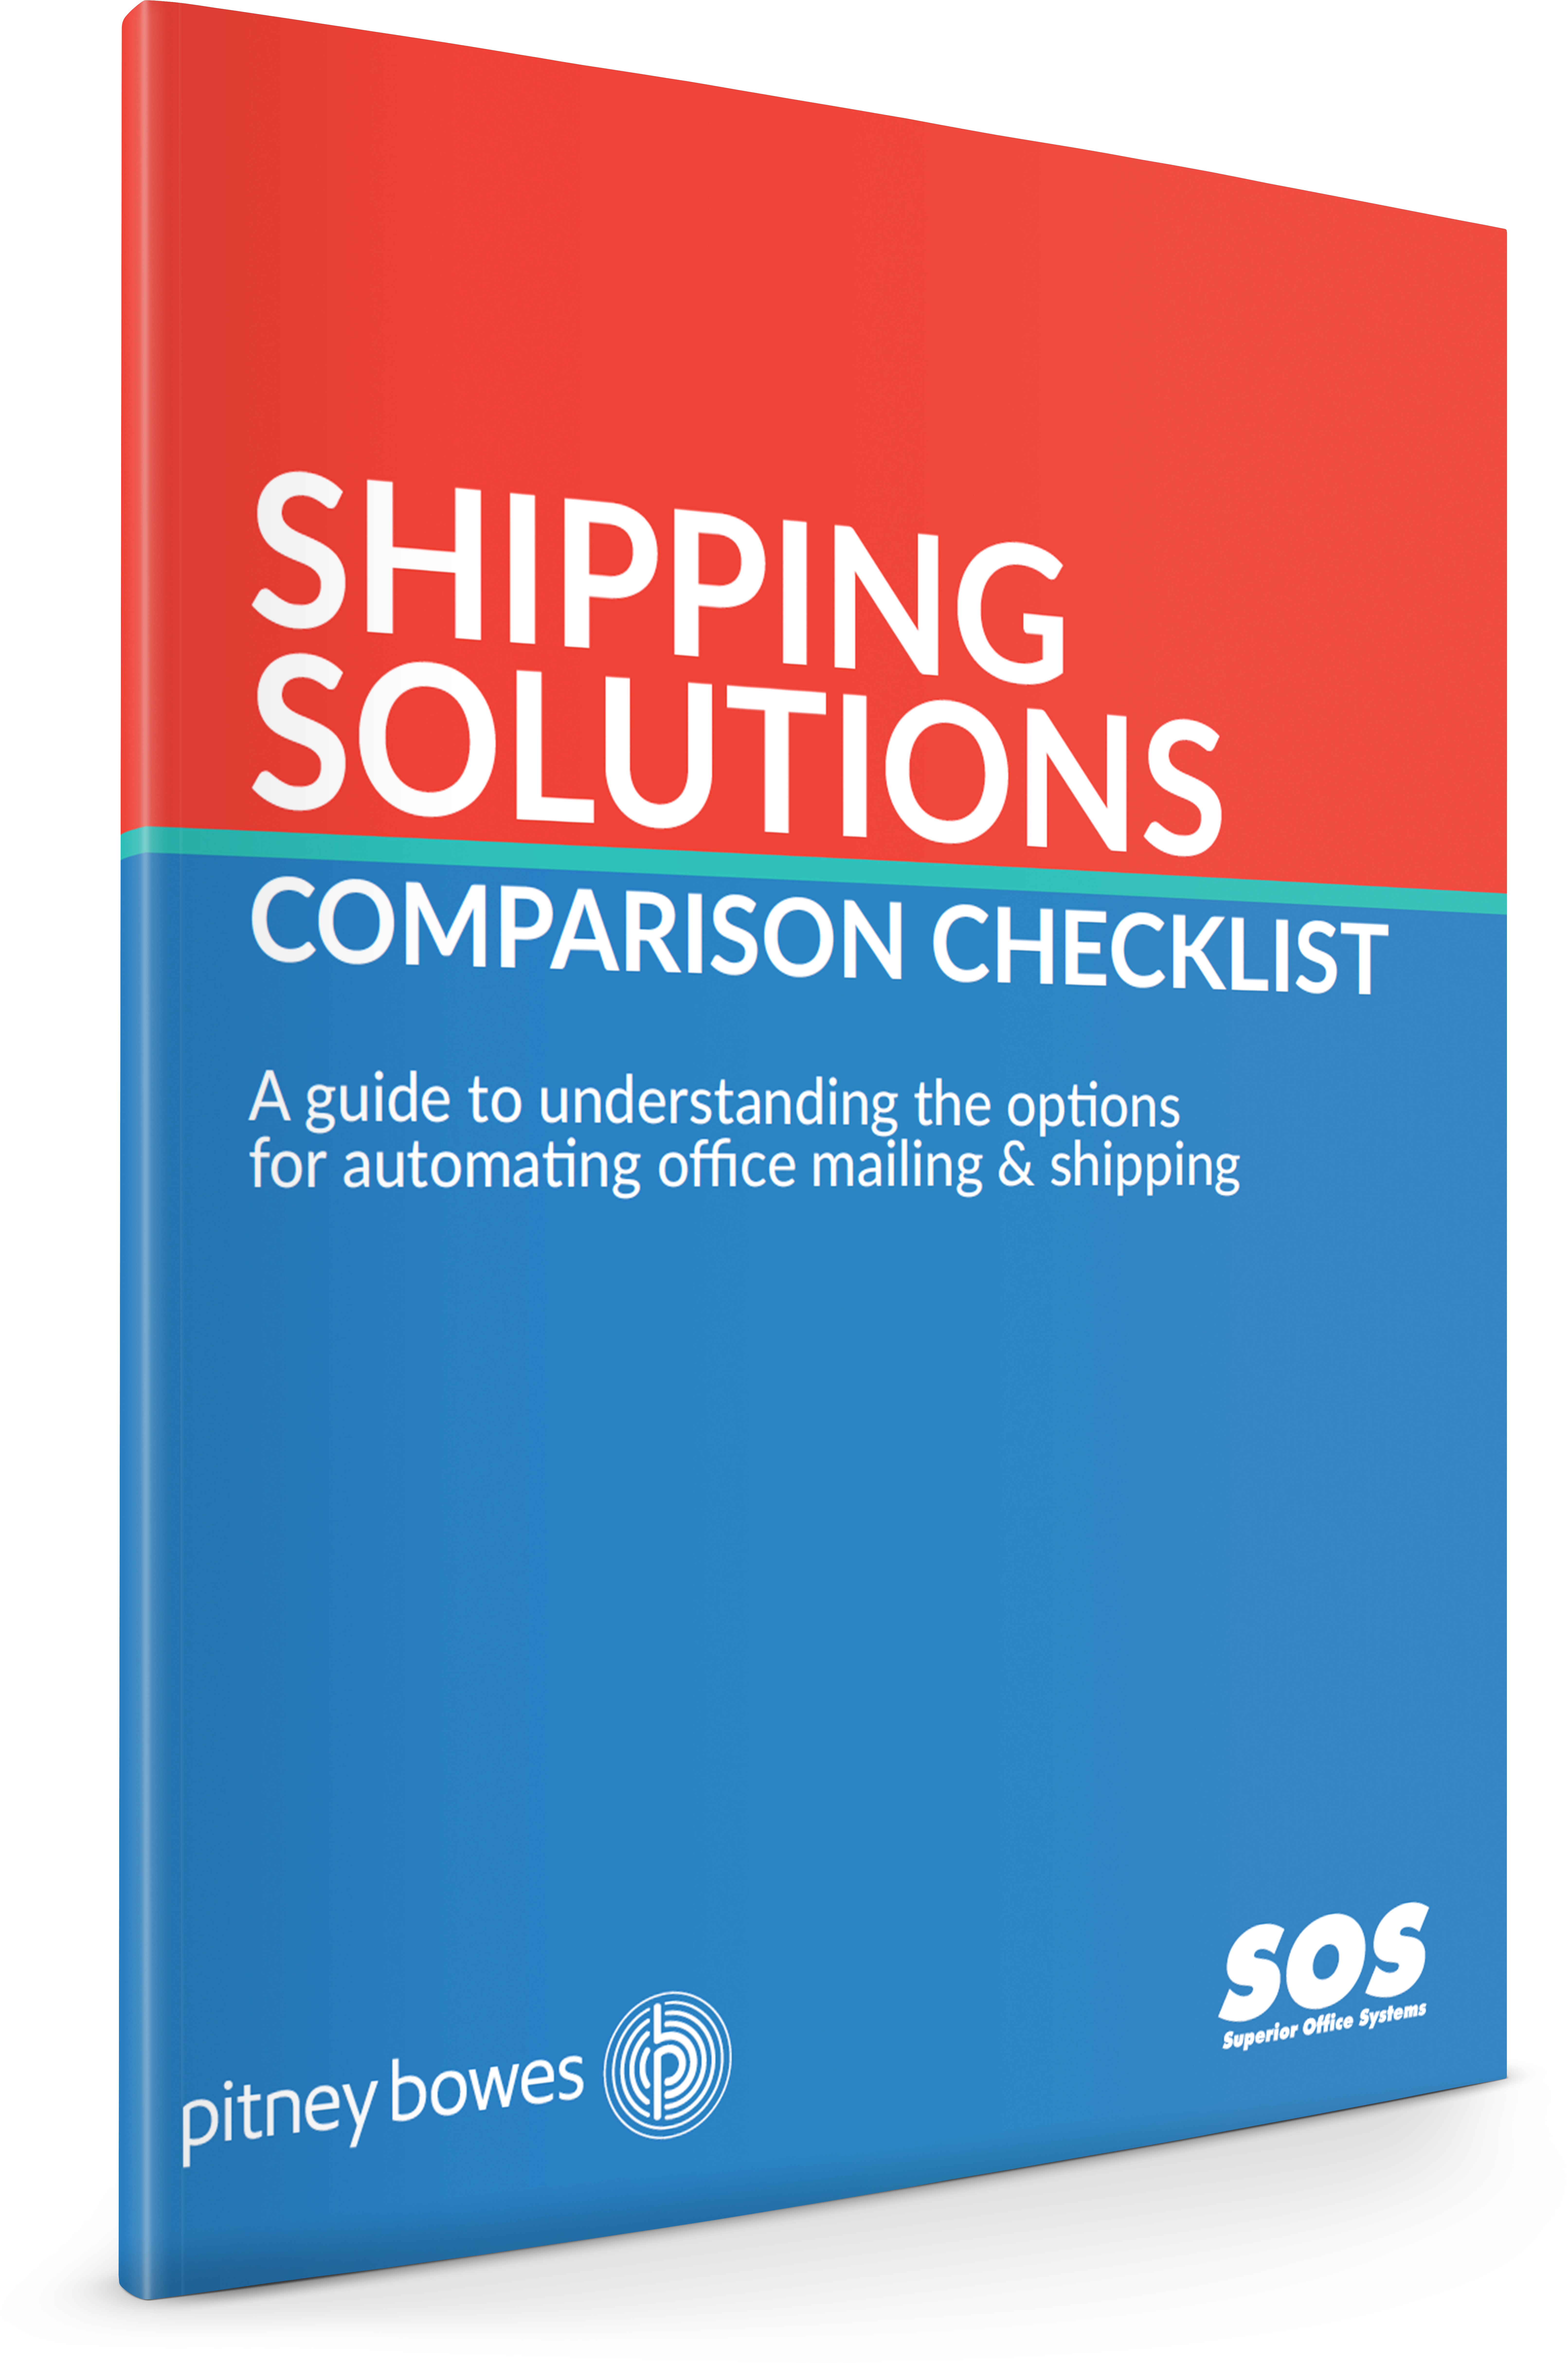 SOS_Shipping Solutions Checklist.png